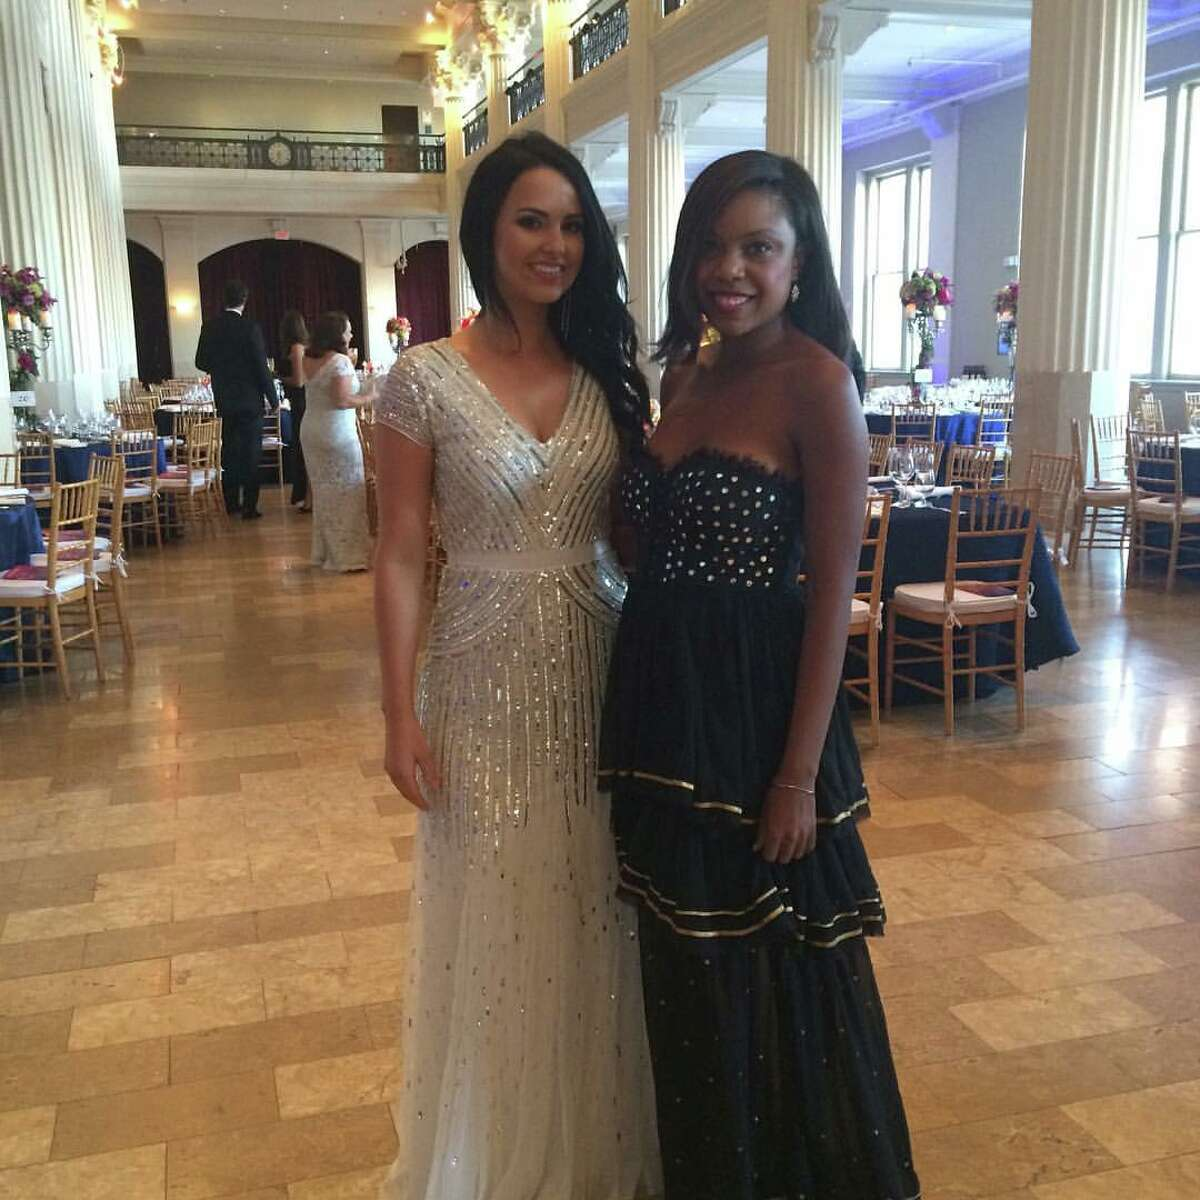 Sarah Henry and Amber Elliott at the Corinthian for the Houston Symphony's Opening Night concert and dinner gala.